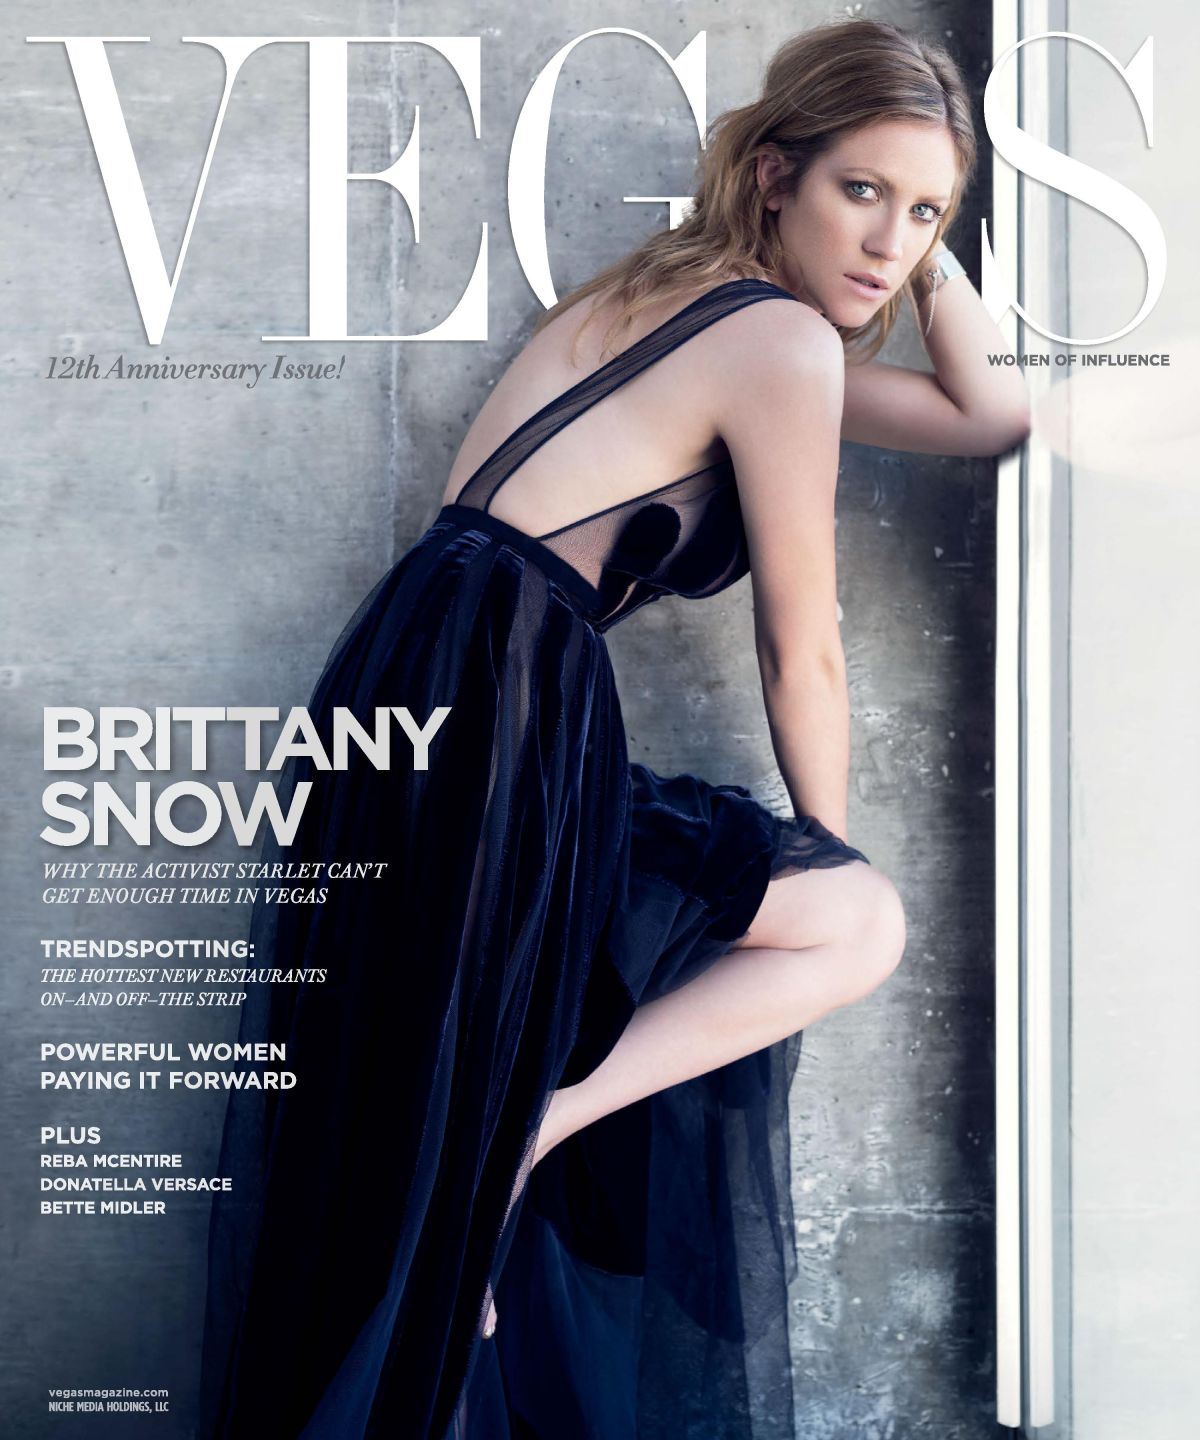 BRITTANY SNOW in Vegas Magazine, Issue 3 May/June 2015